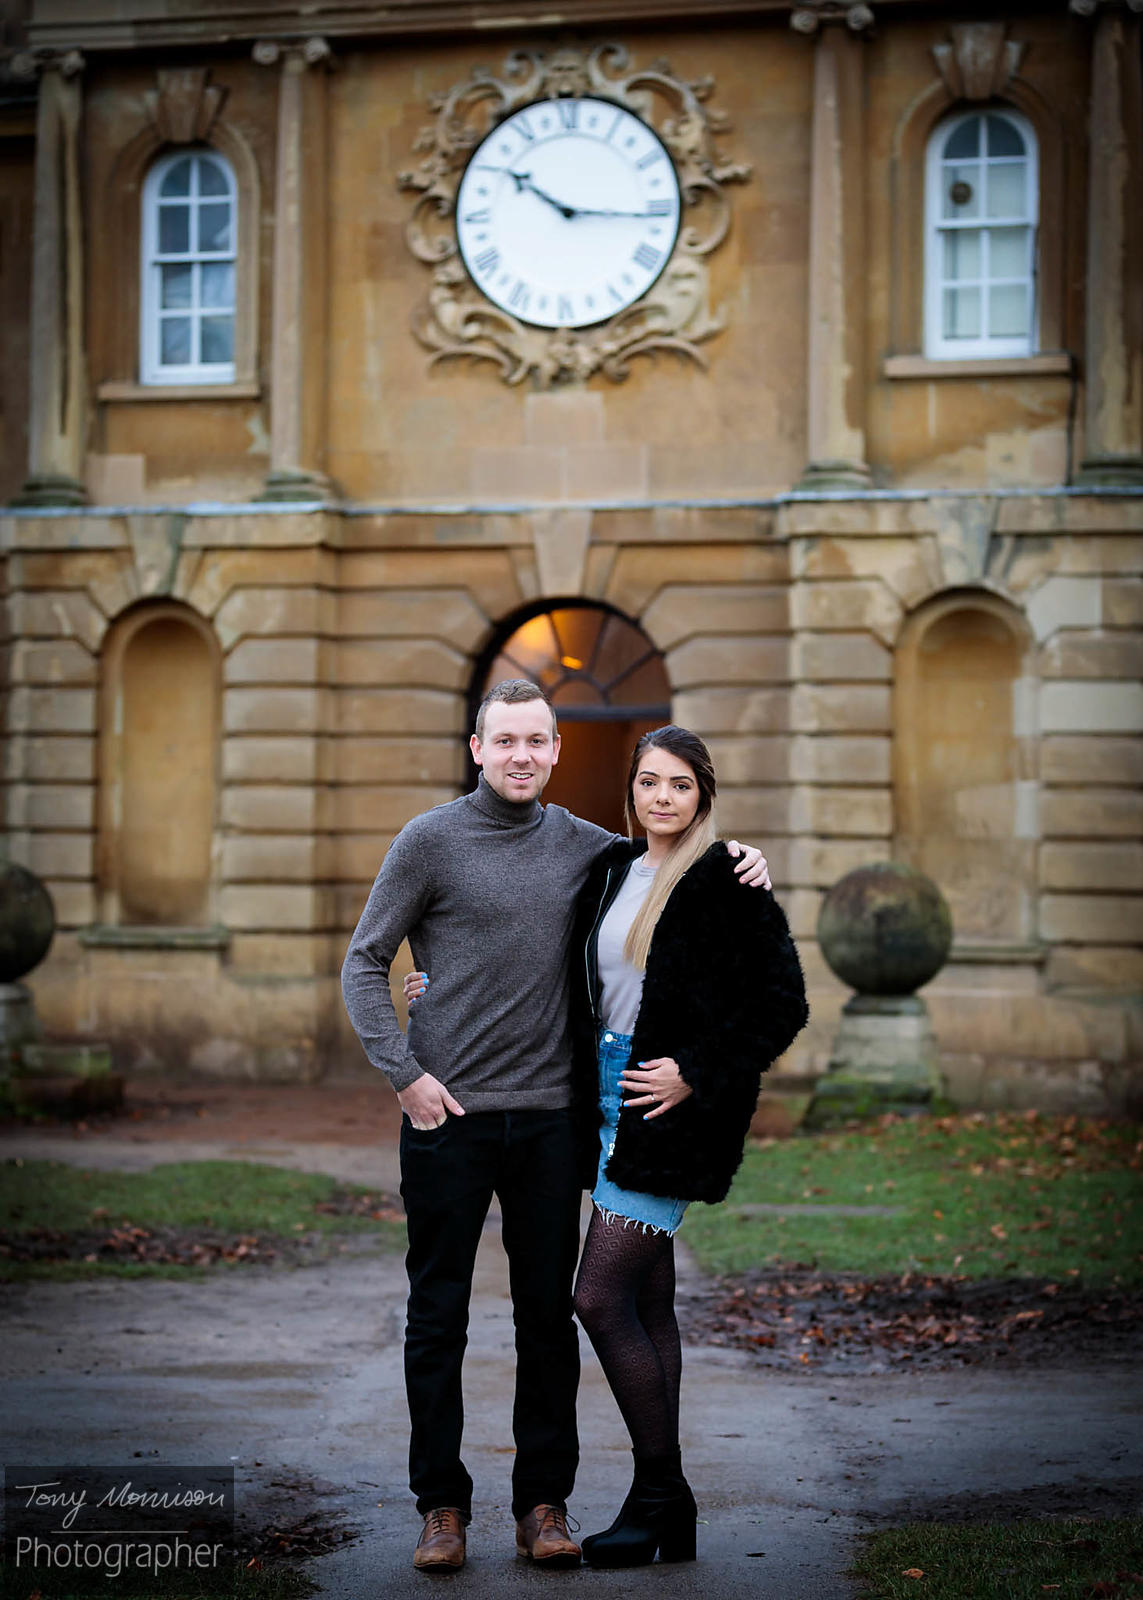 Preview from Danielle & James' #WollatonHall shoot #loveanddevotion #Weddingphotographer #weddingmoments #EngagementPhoto #Portrait #Family #Gorgeous #Beautiful #Awesome